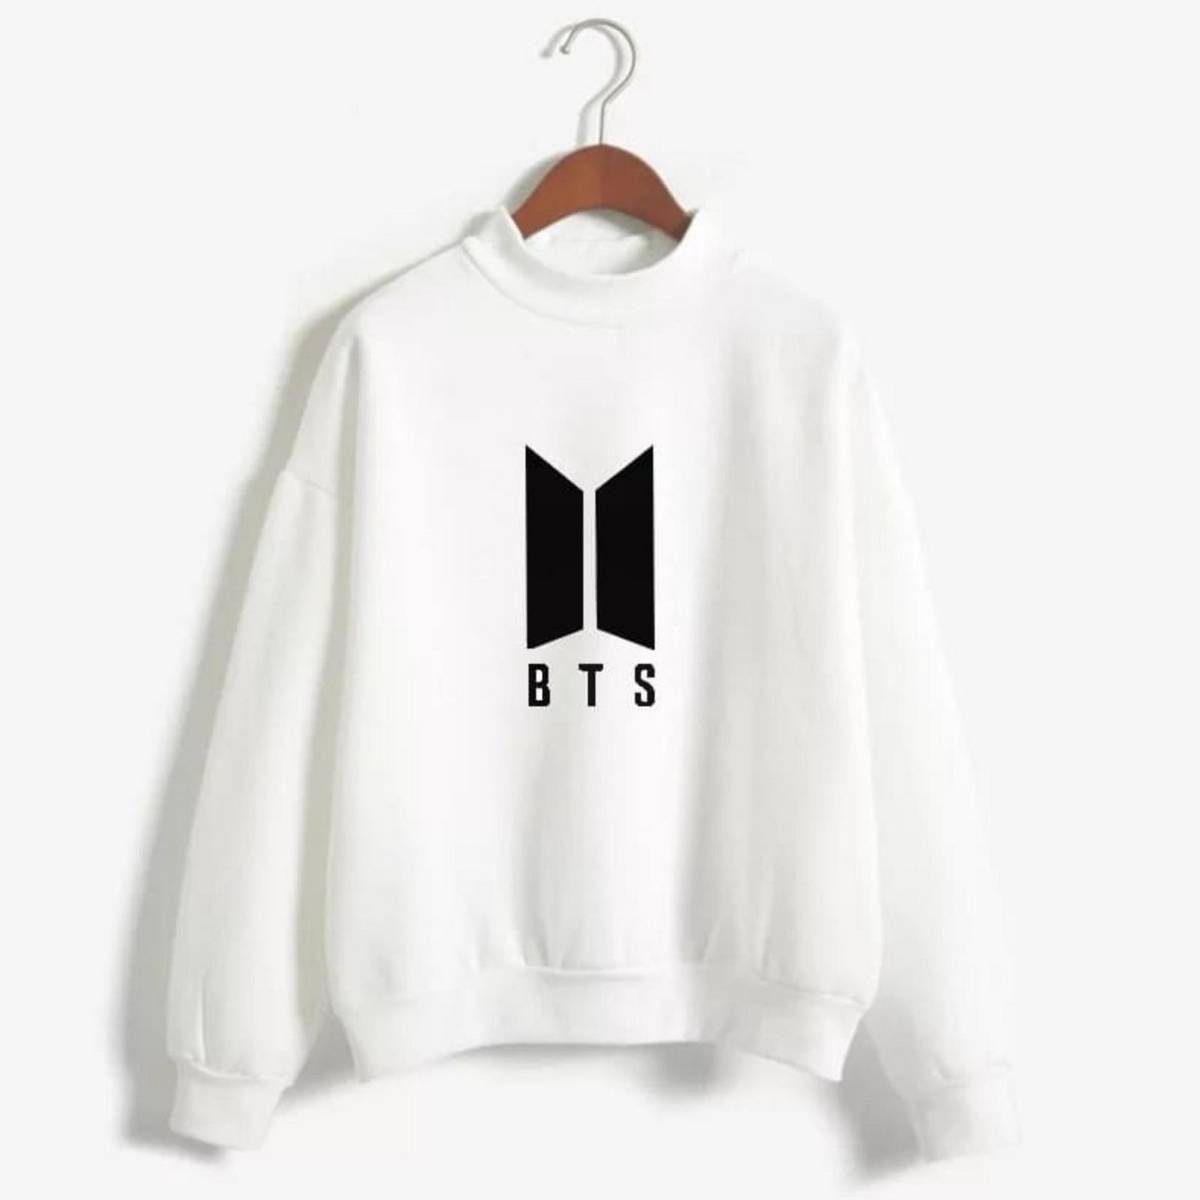 BTS Sweatshirt White  Fleece Long Sleeves Ribbed Cuff Printed Winter Wear sweats And Hoodies For Women Export Quality